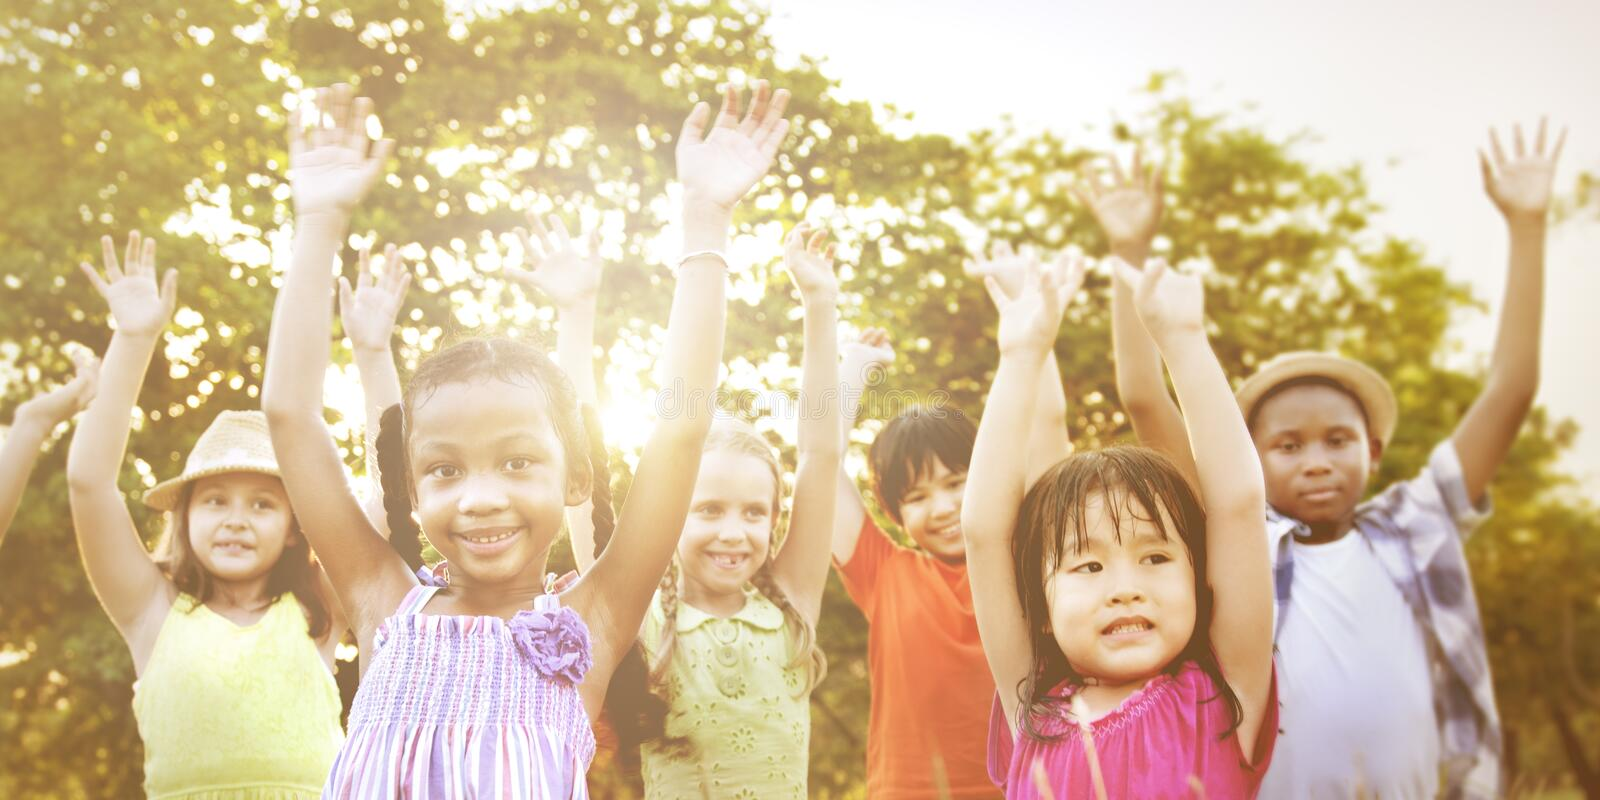 Children Outdoors Playing Cheerful Together Concept royalty free stock photos